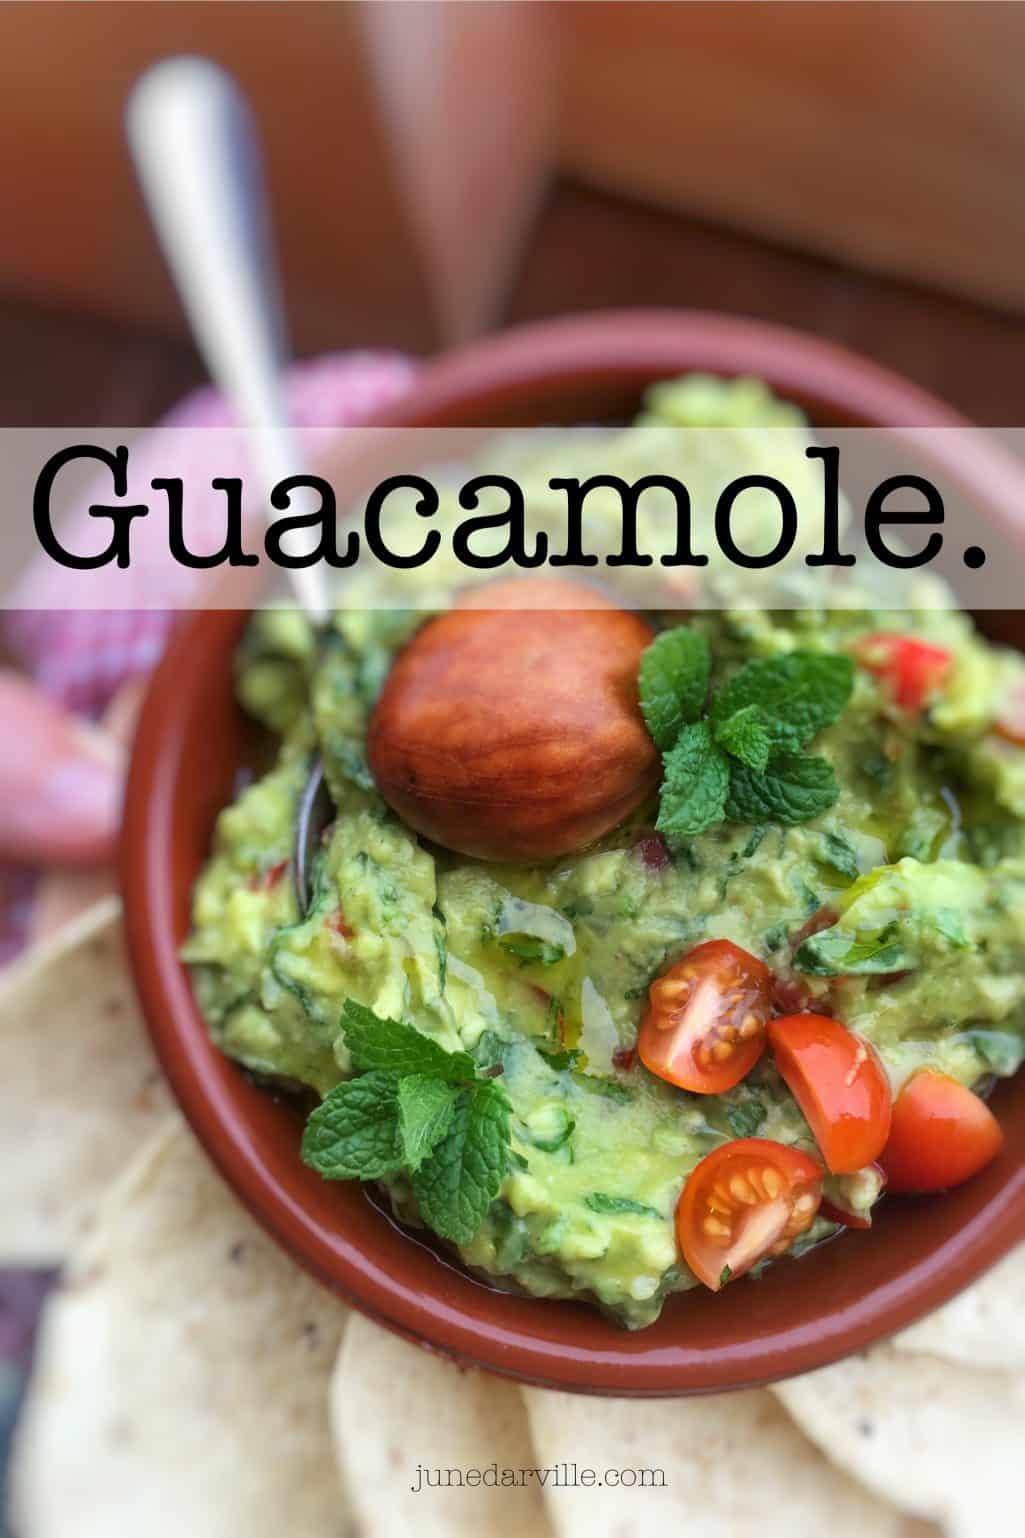 My homemade easy guacamole recipe, the creamy Mexican classic of all classics! And what an appetizer to get the party started...